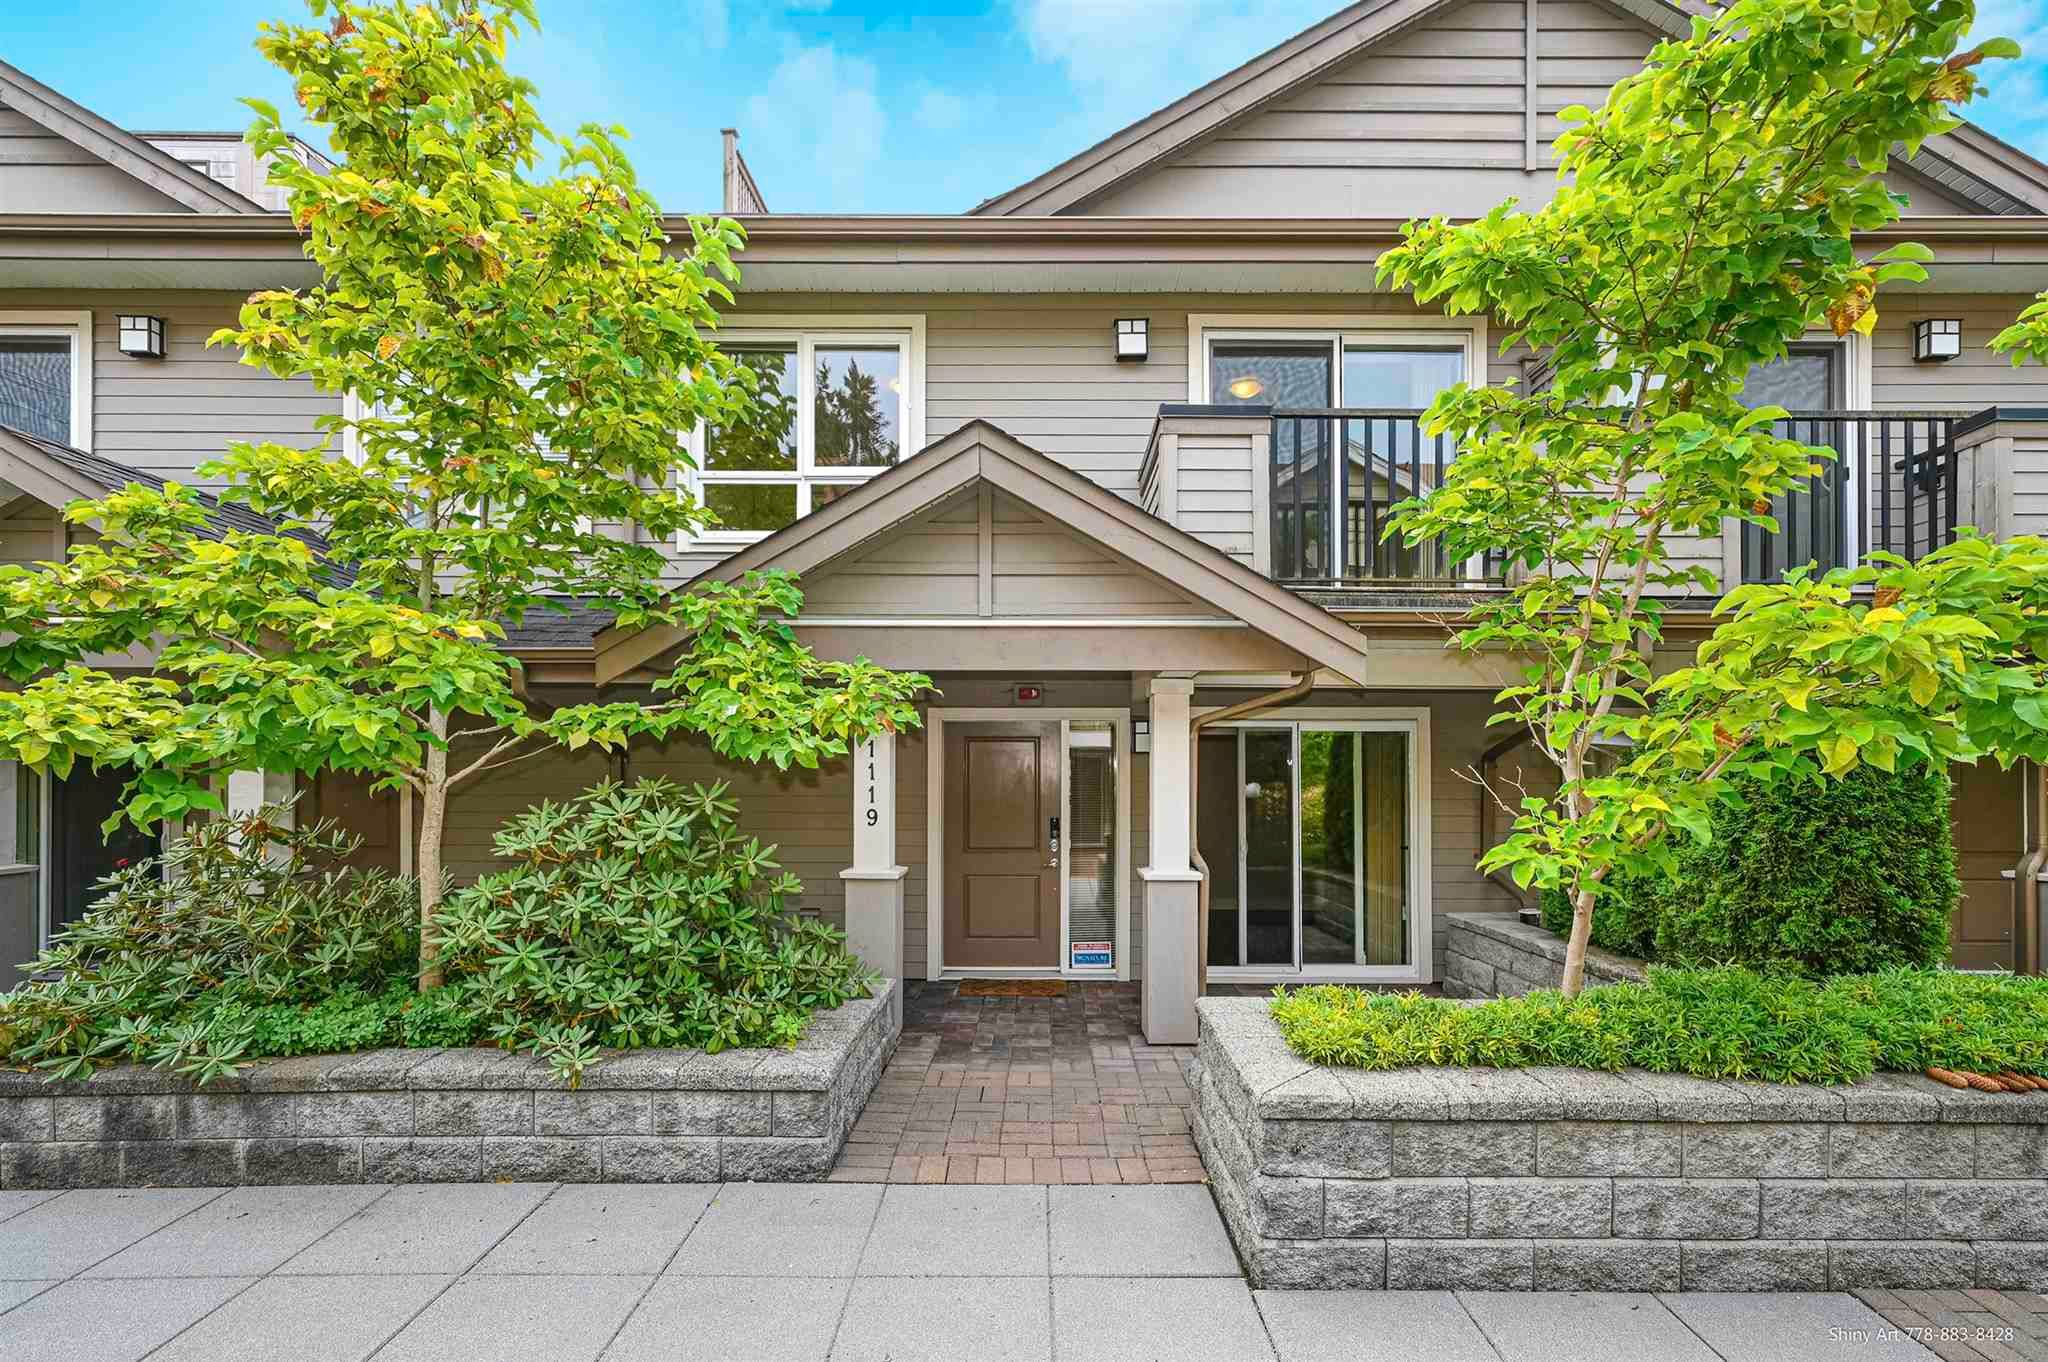 """Main Photo: 1119 ST. ANDREWS Avenue in North Vancouver: Central Lonsdale Townhouse for sale in """"St. Andrews Gardens"""" : MLS®# R2605968"""